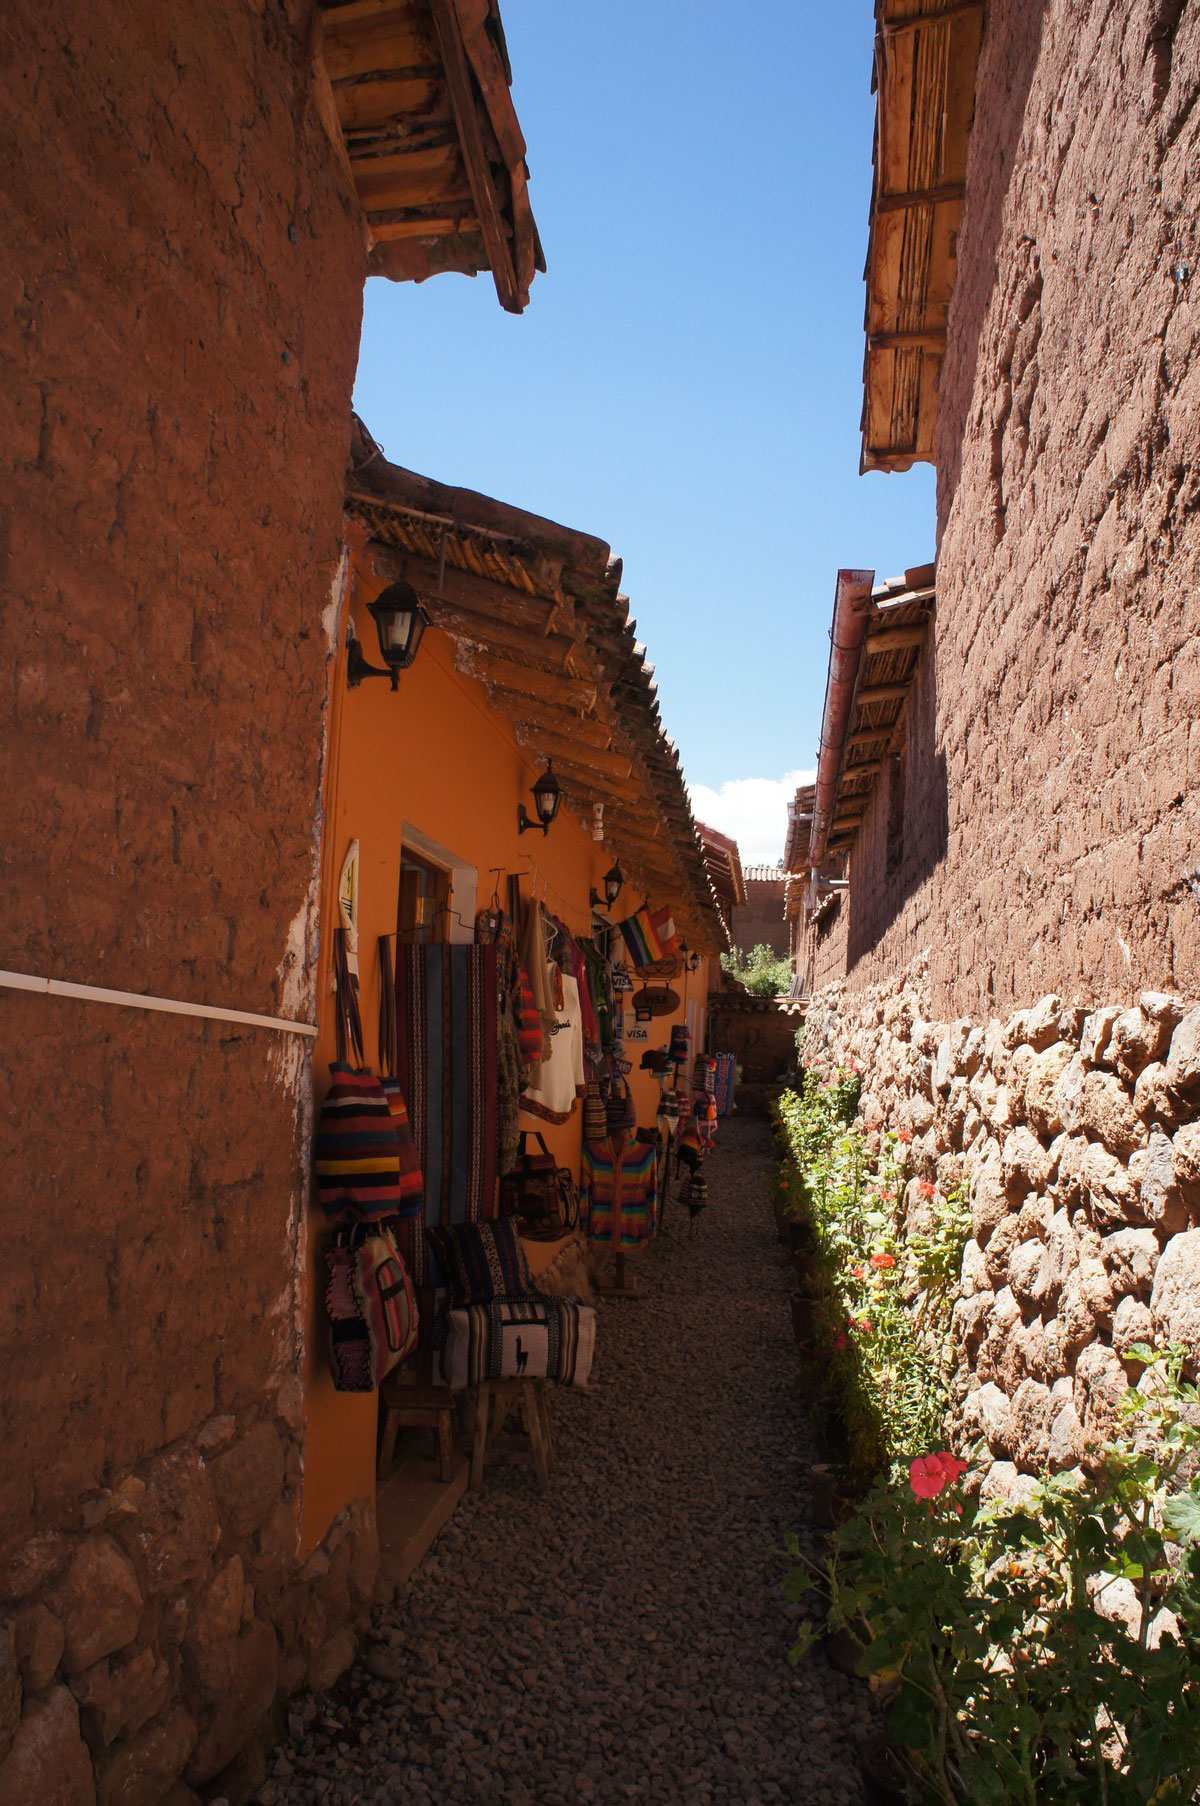 Rues de Chinchero, village traditionnel au nord ouest de Cusco